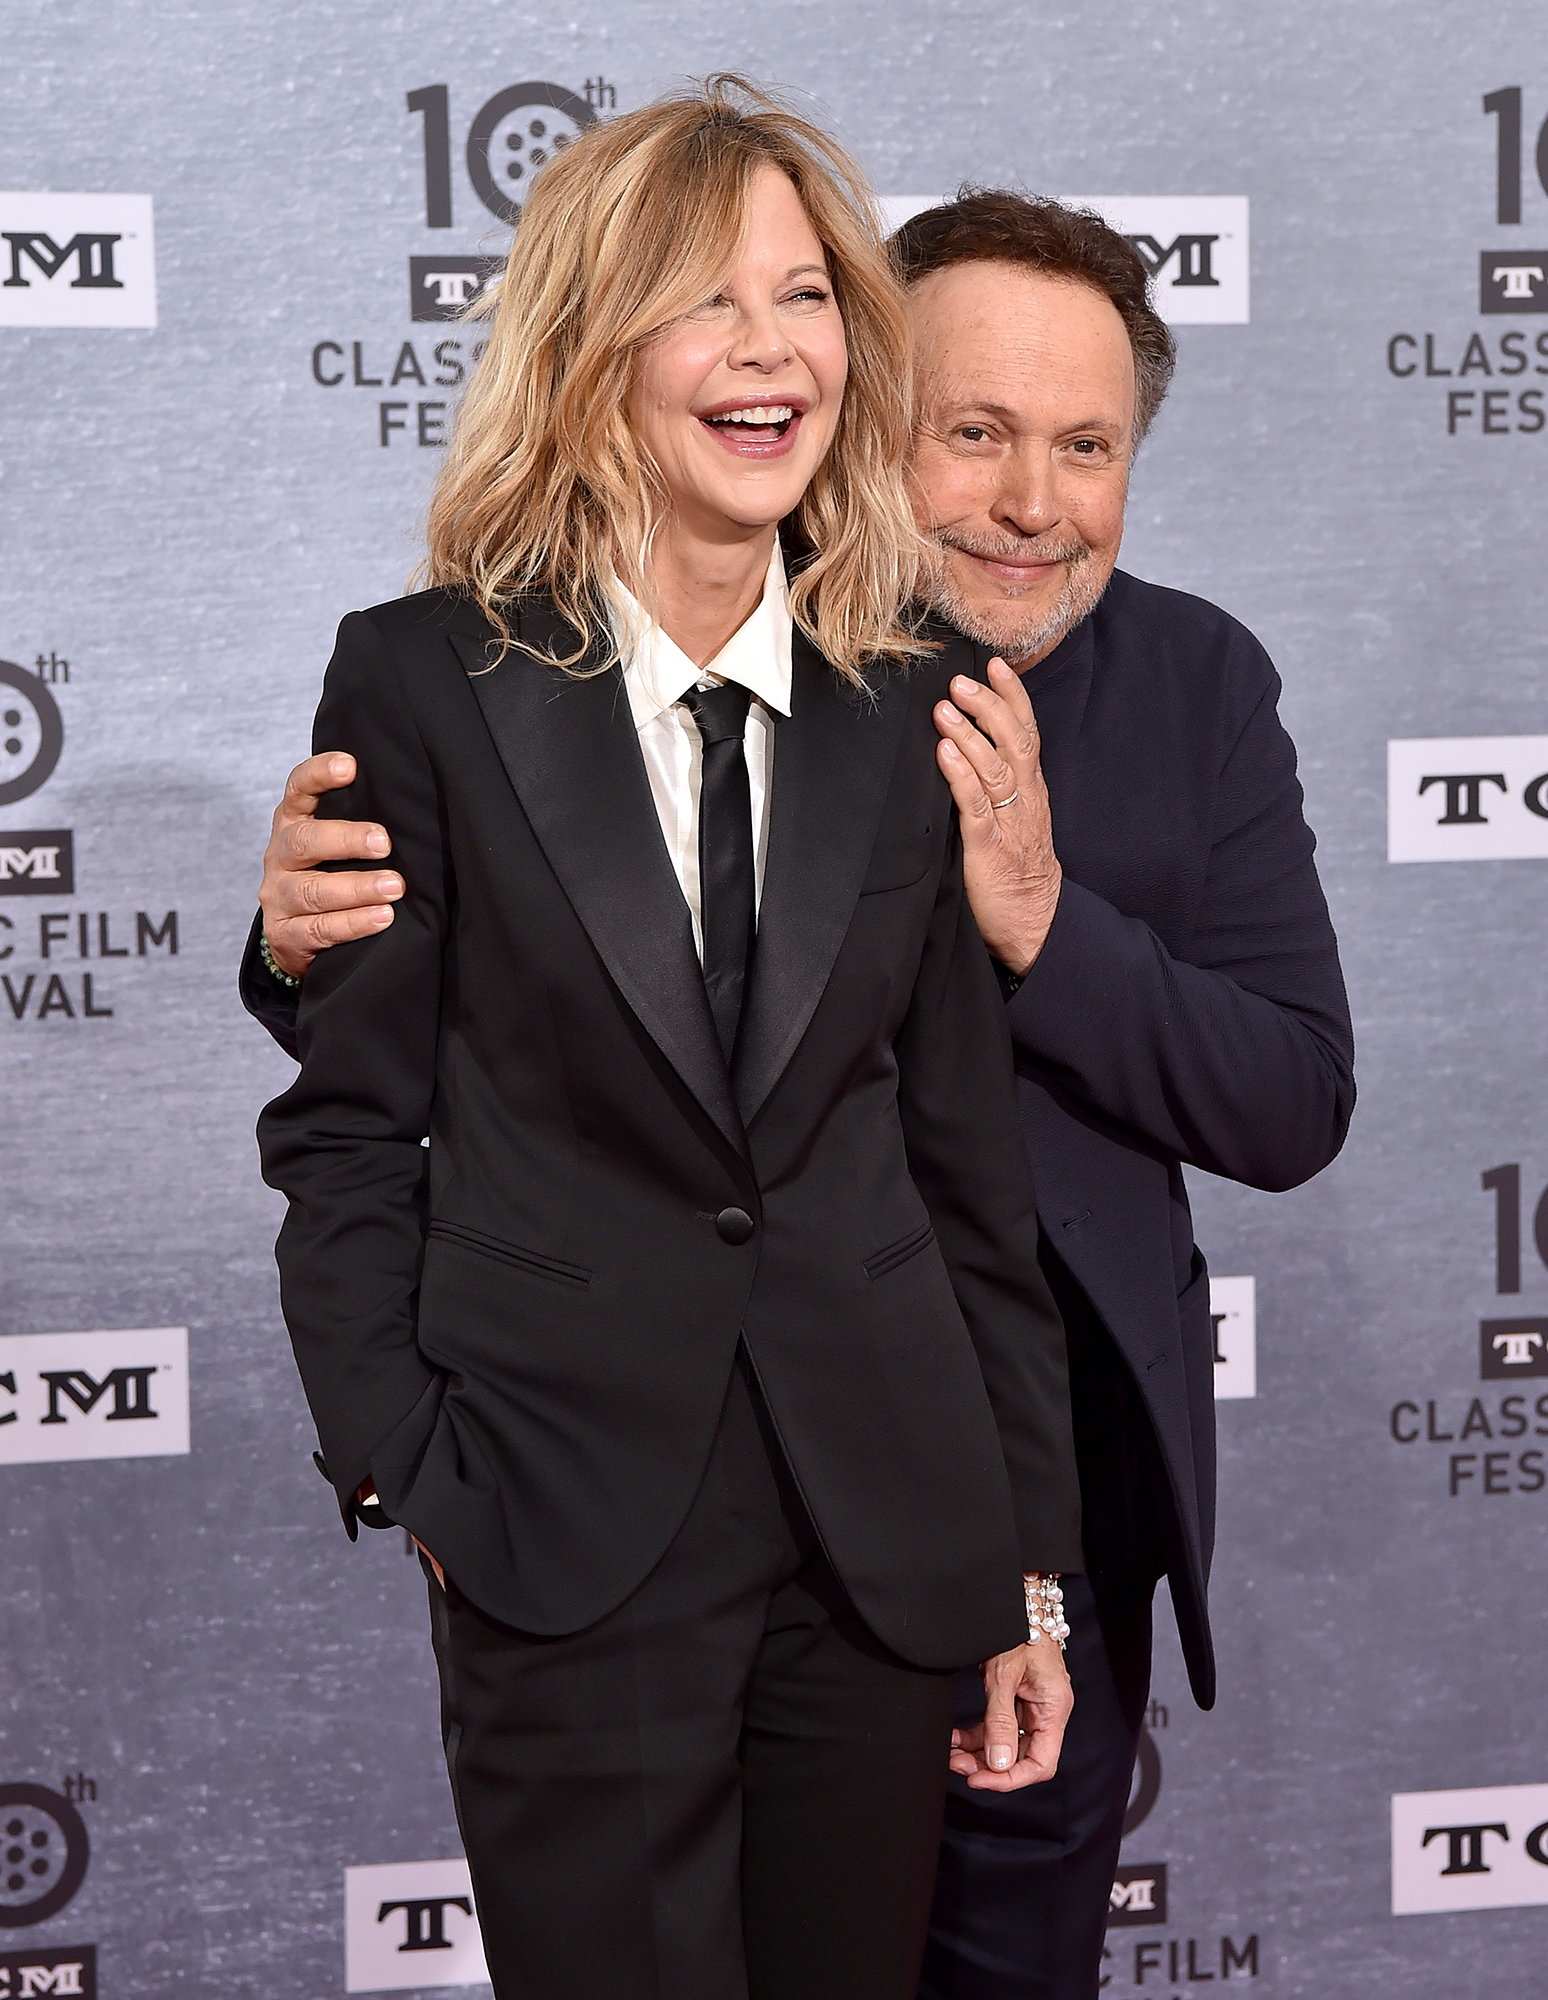 Rob Reiner Meg Ryan Billy Crystal When Harry Met Sally - Meg Ryan and Billy Crystal attend the 2019 TCM Classic Film Festival Opening Night Gala and 30th Anniversary Screening of 'When Harry Met Sally' at TCL Chinese Theatre on April 11, 2019 in Hollywood, California.